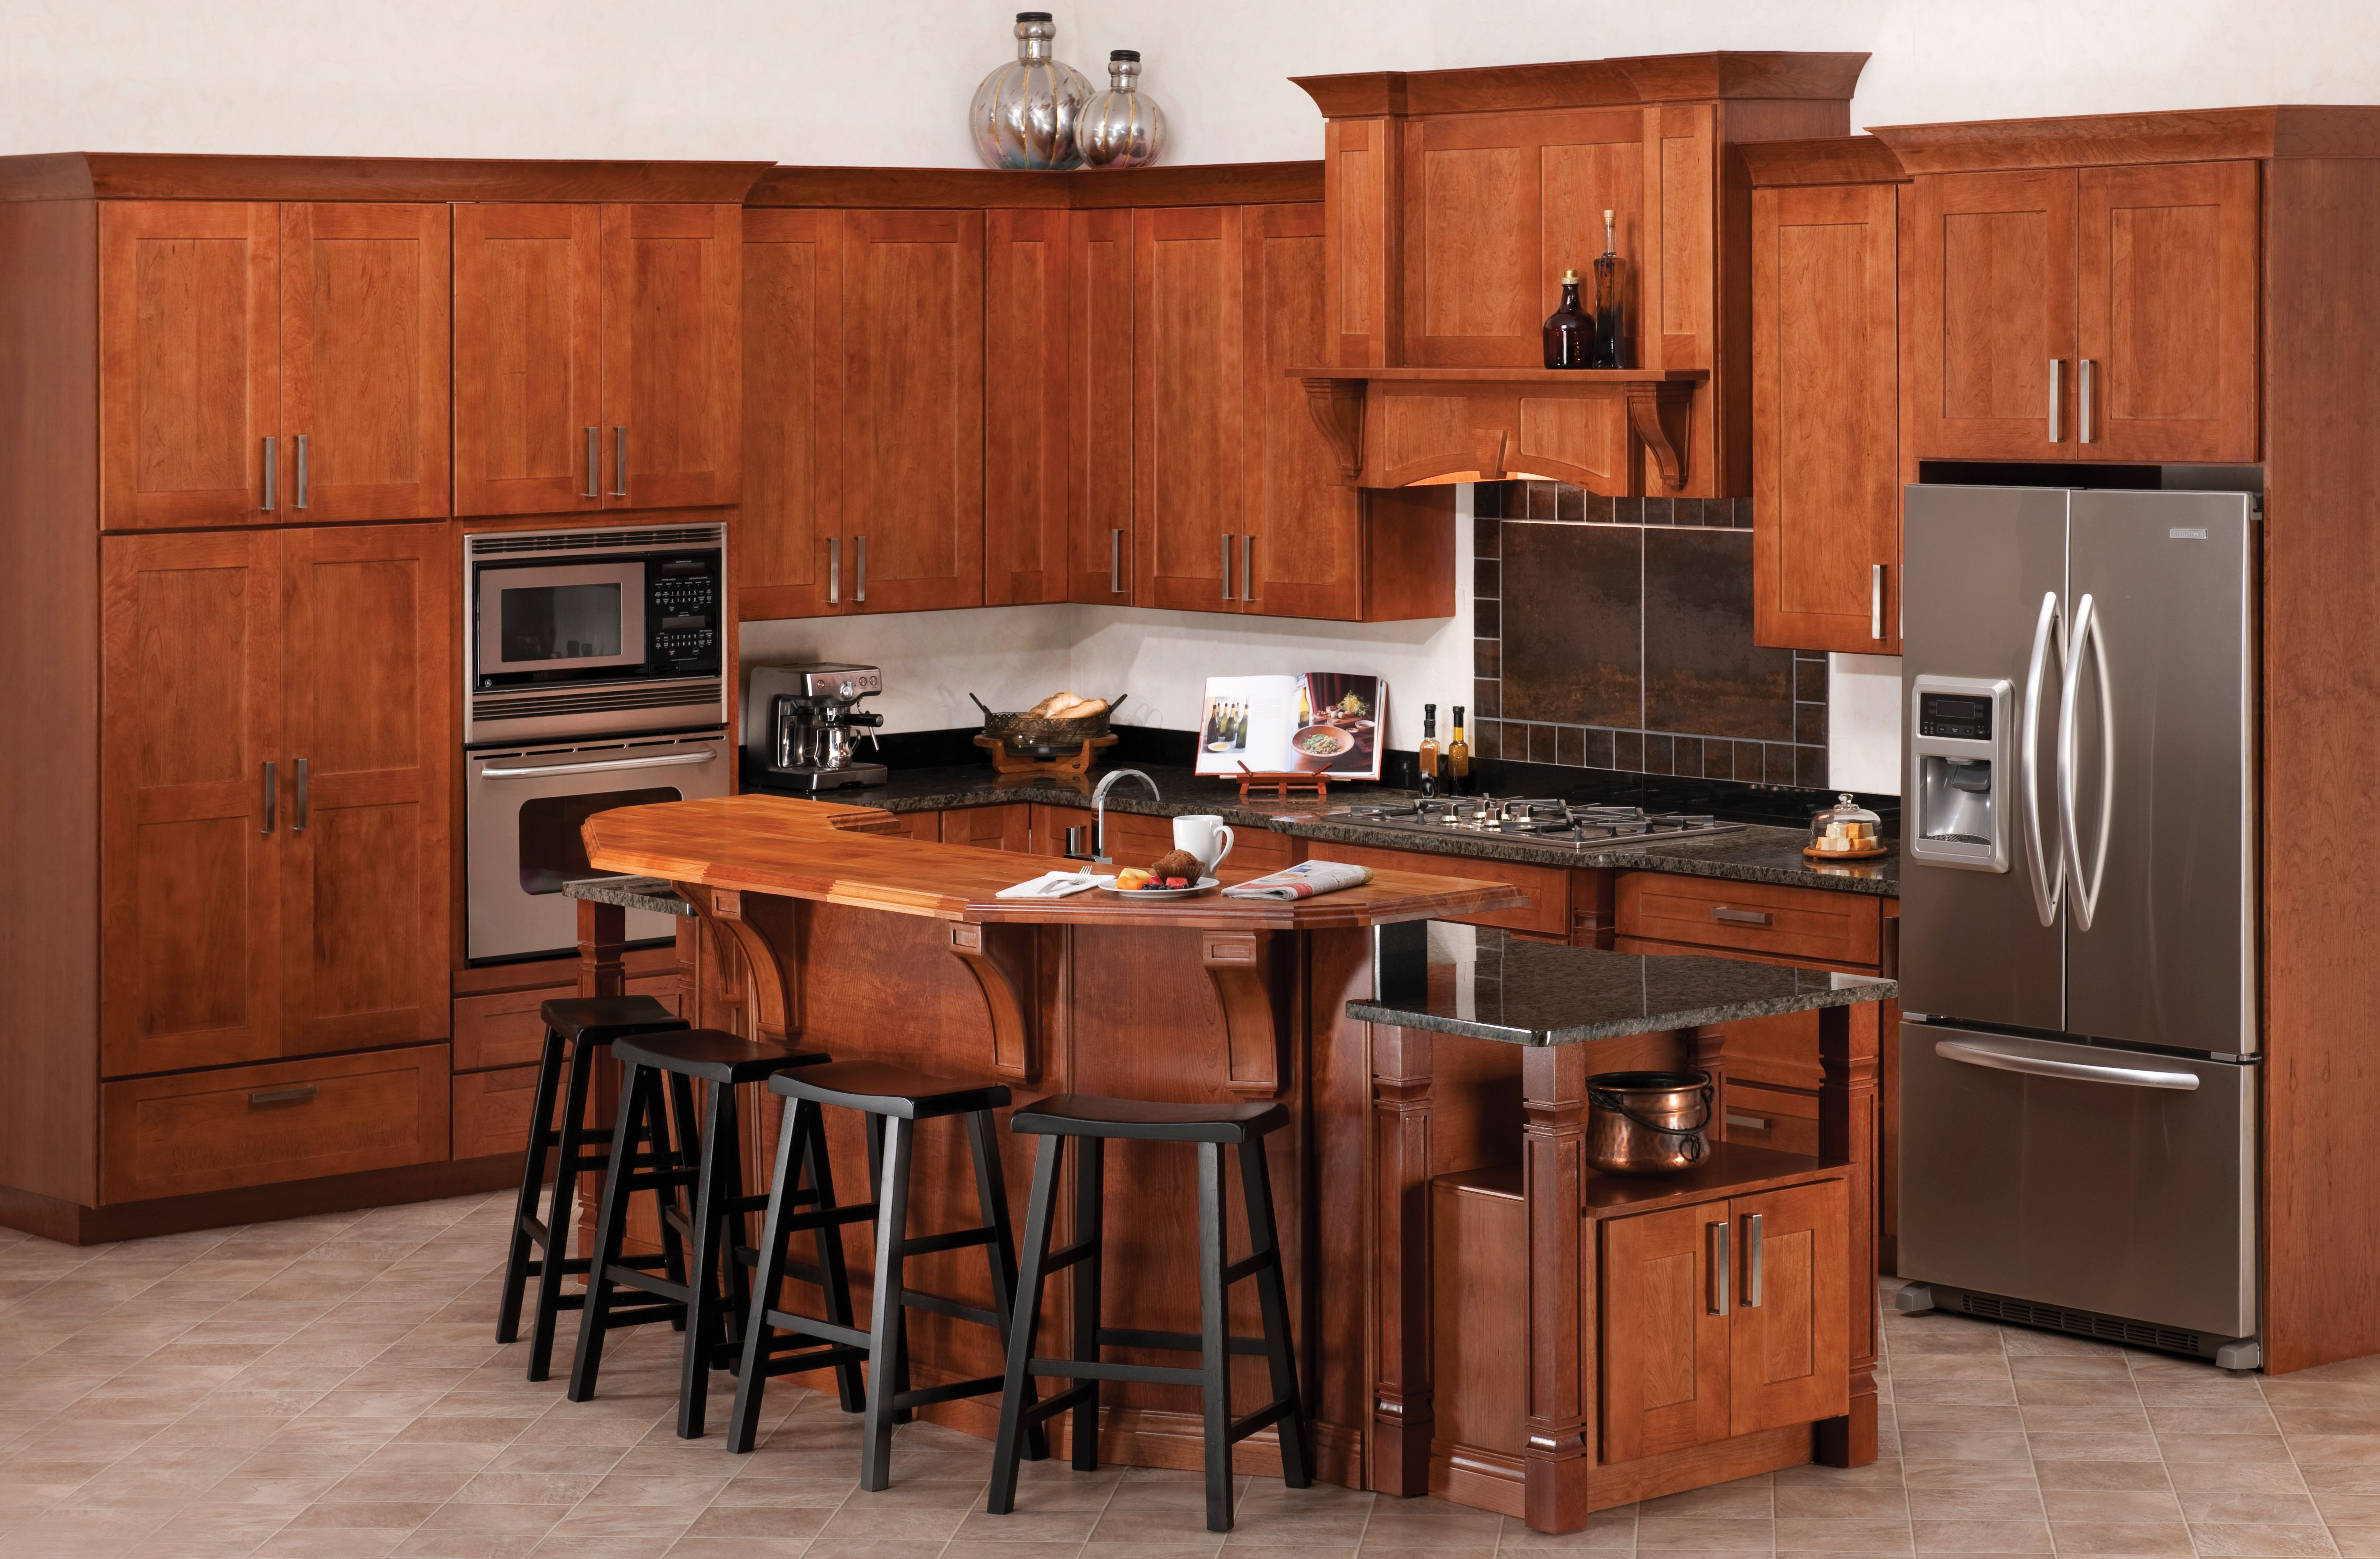 Kitchen Cabinets Perth Amboy Destiny Perth Amboy Ultracraft Perth Amboy Kitchen Home Decor Wholesale Kitchens Cabinet Distributors Wholesale Kitchens Is A Family Owned And Operated Business For Over 45 Years